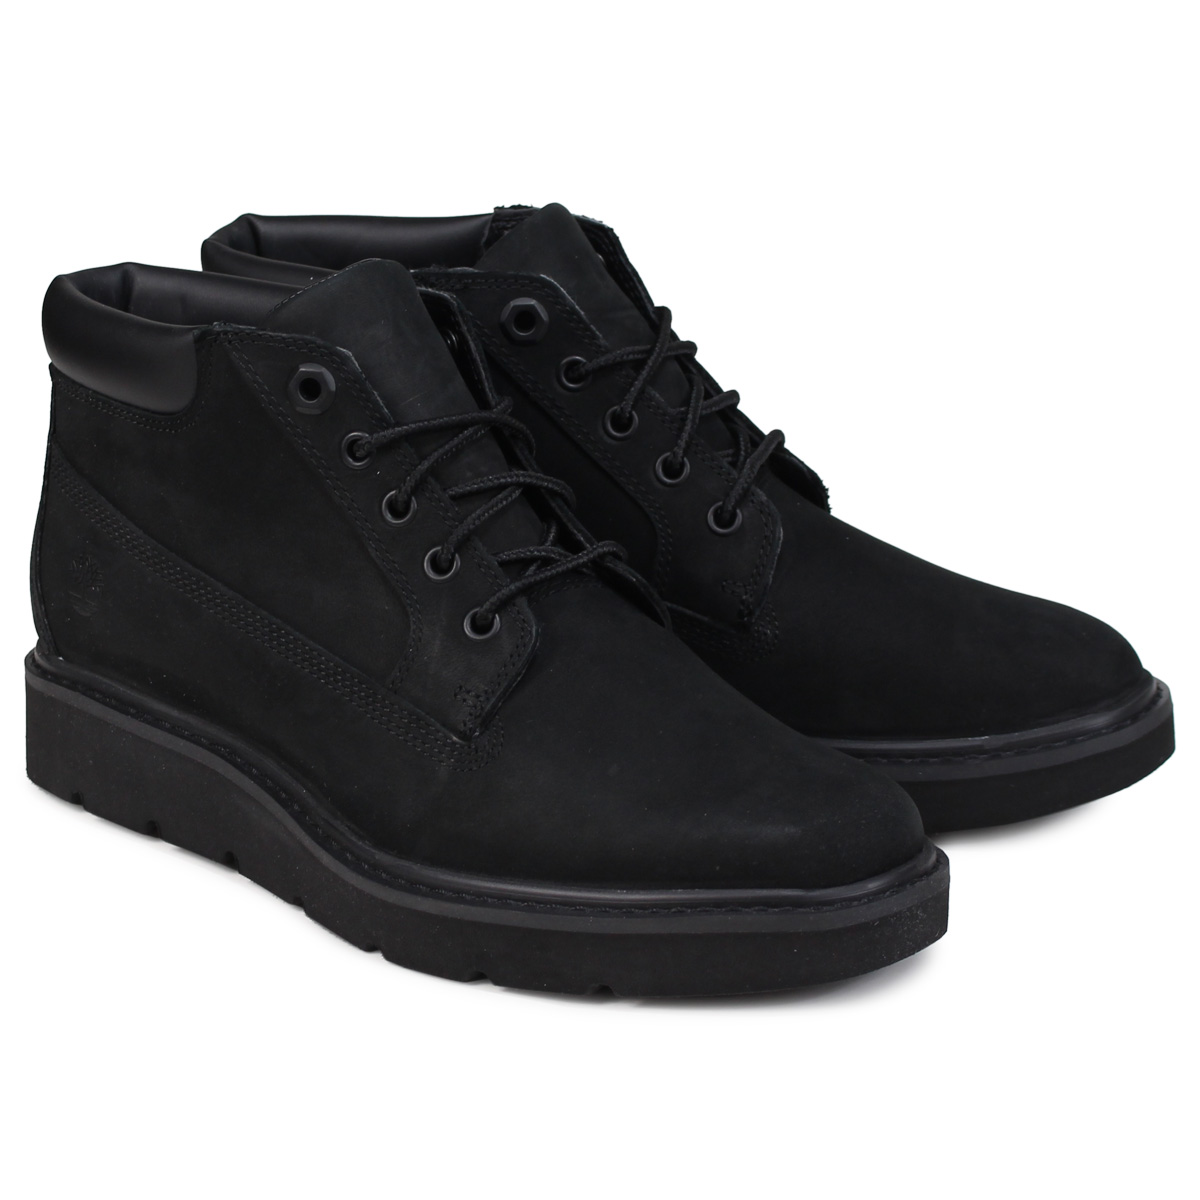 meet exclusive deals Official Website Timberland KENNISTON NELLIE Timberland boots Kenneth ton Nellie Lady's W  Wise black A1GNS [191]